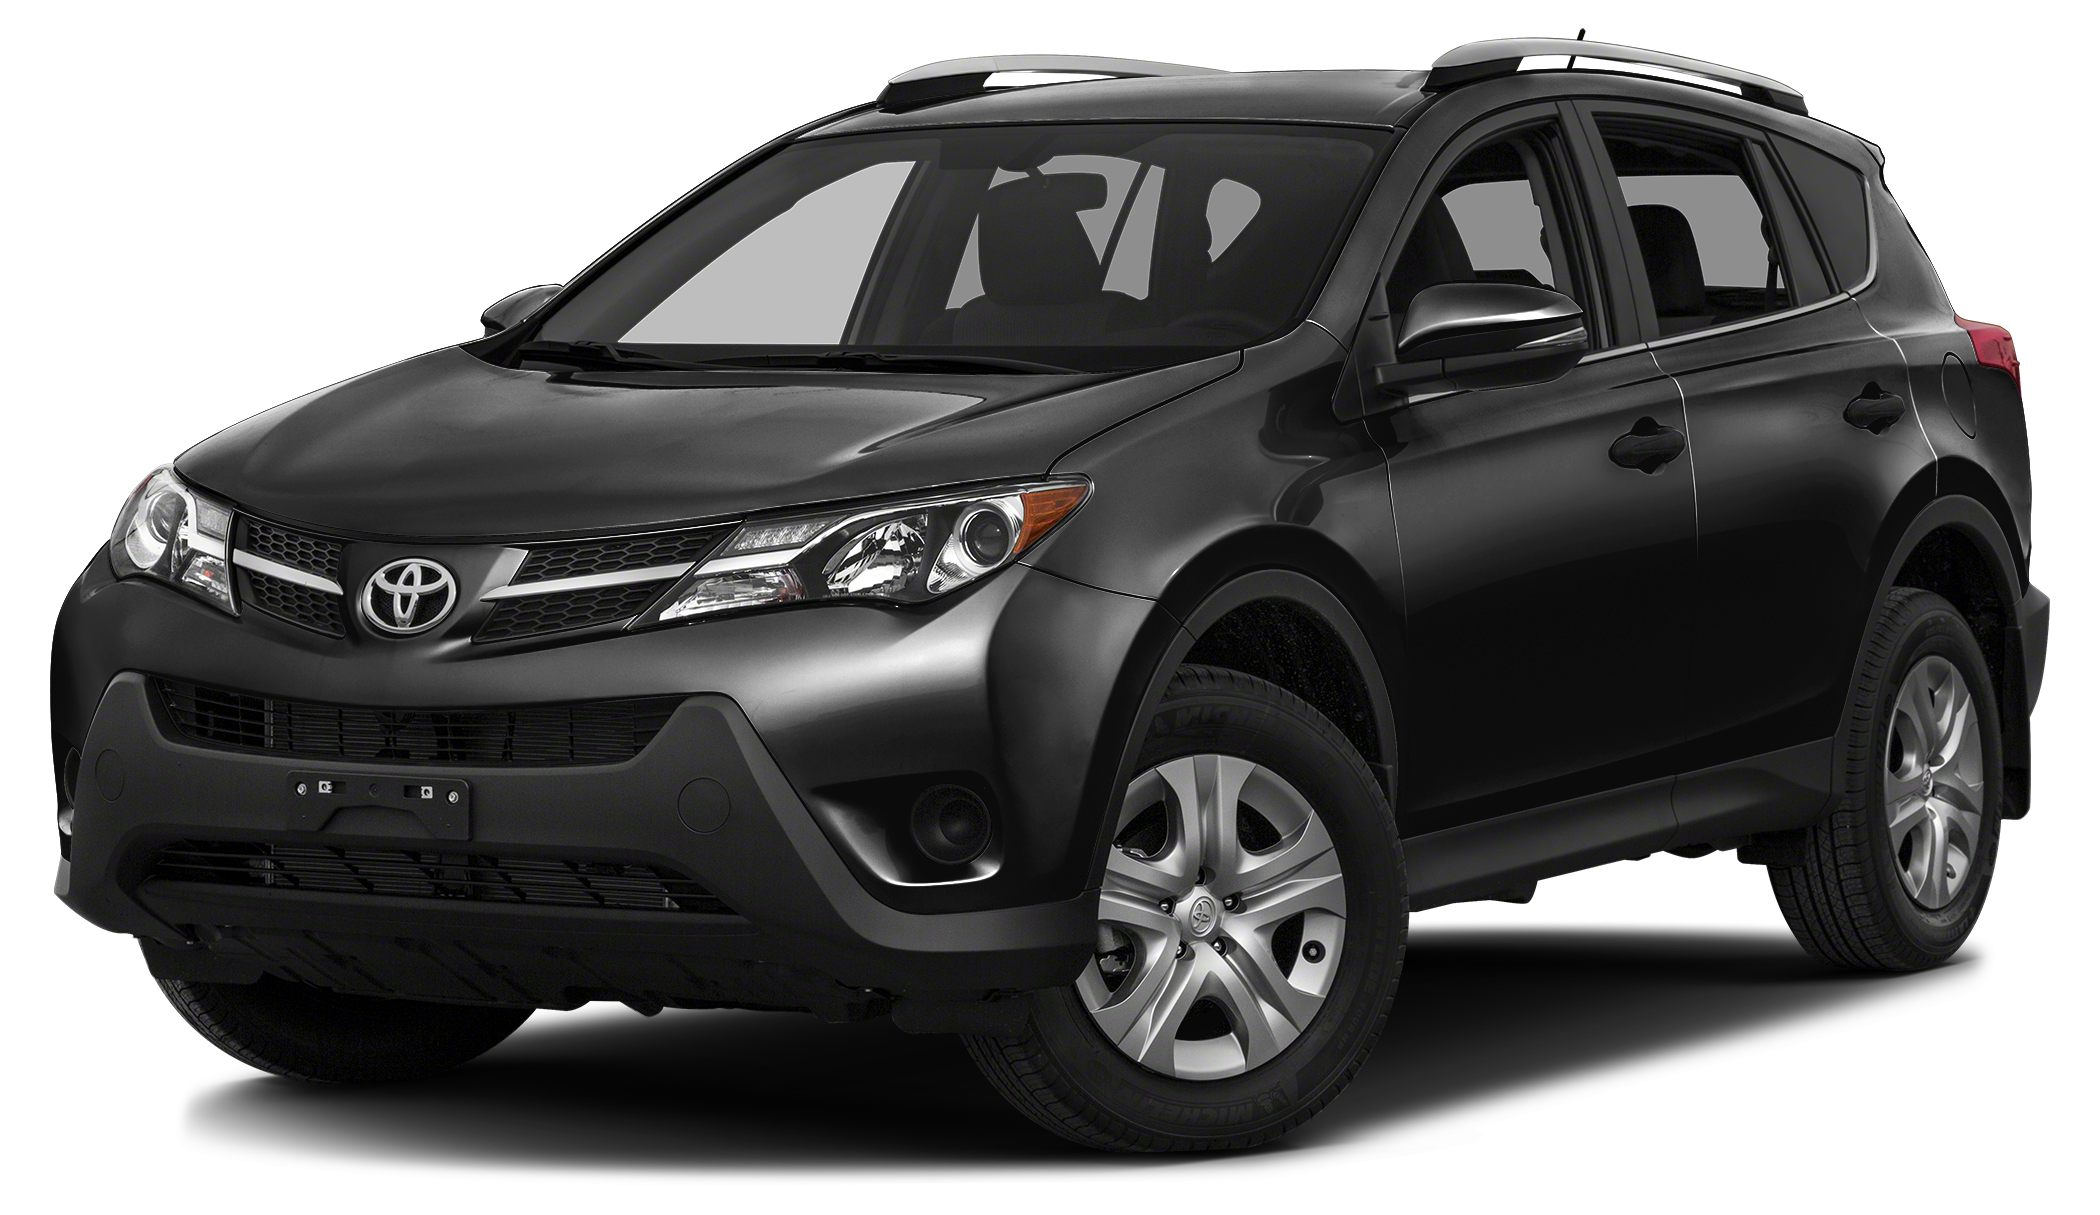 2015 Toyota RAV4 XLE CARFAX 1-Owner GREAT MILES 21438 XLE trim EPA 29 MPG Hwy22 MPG City Moo